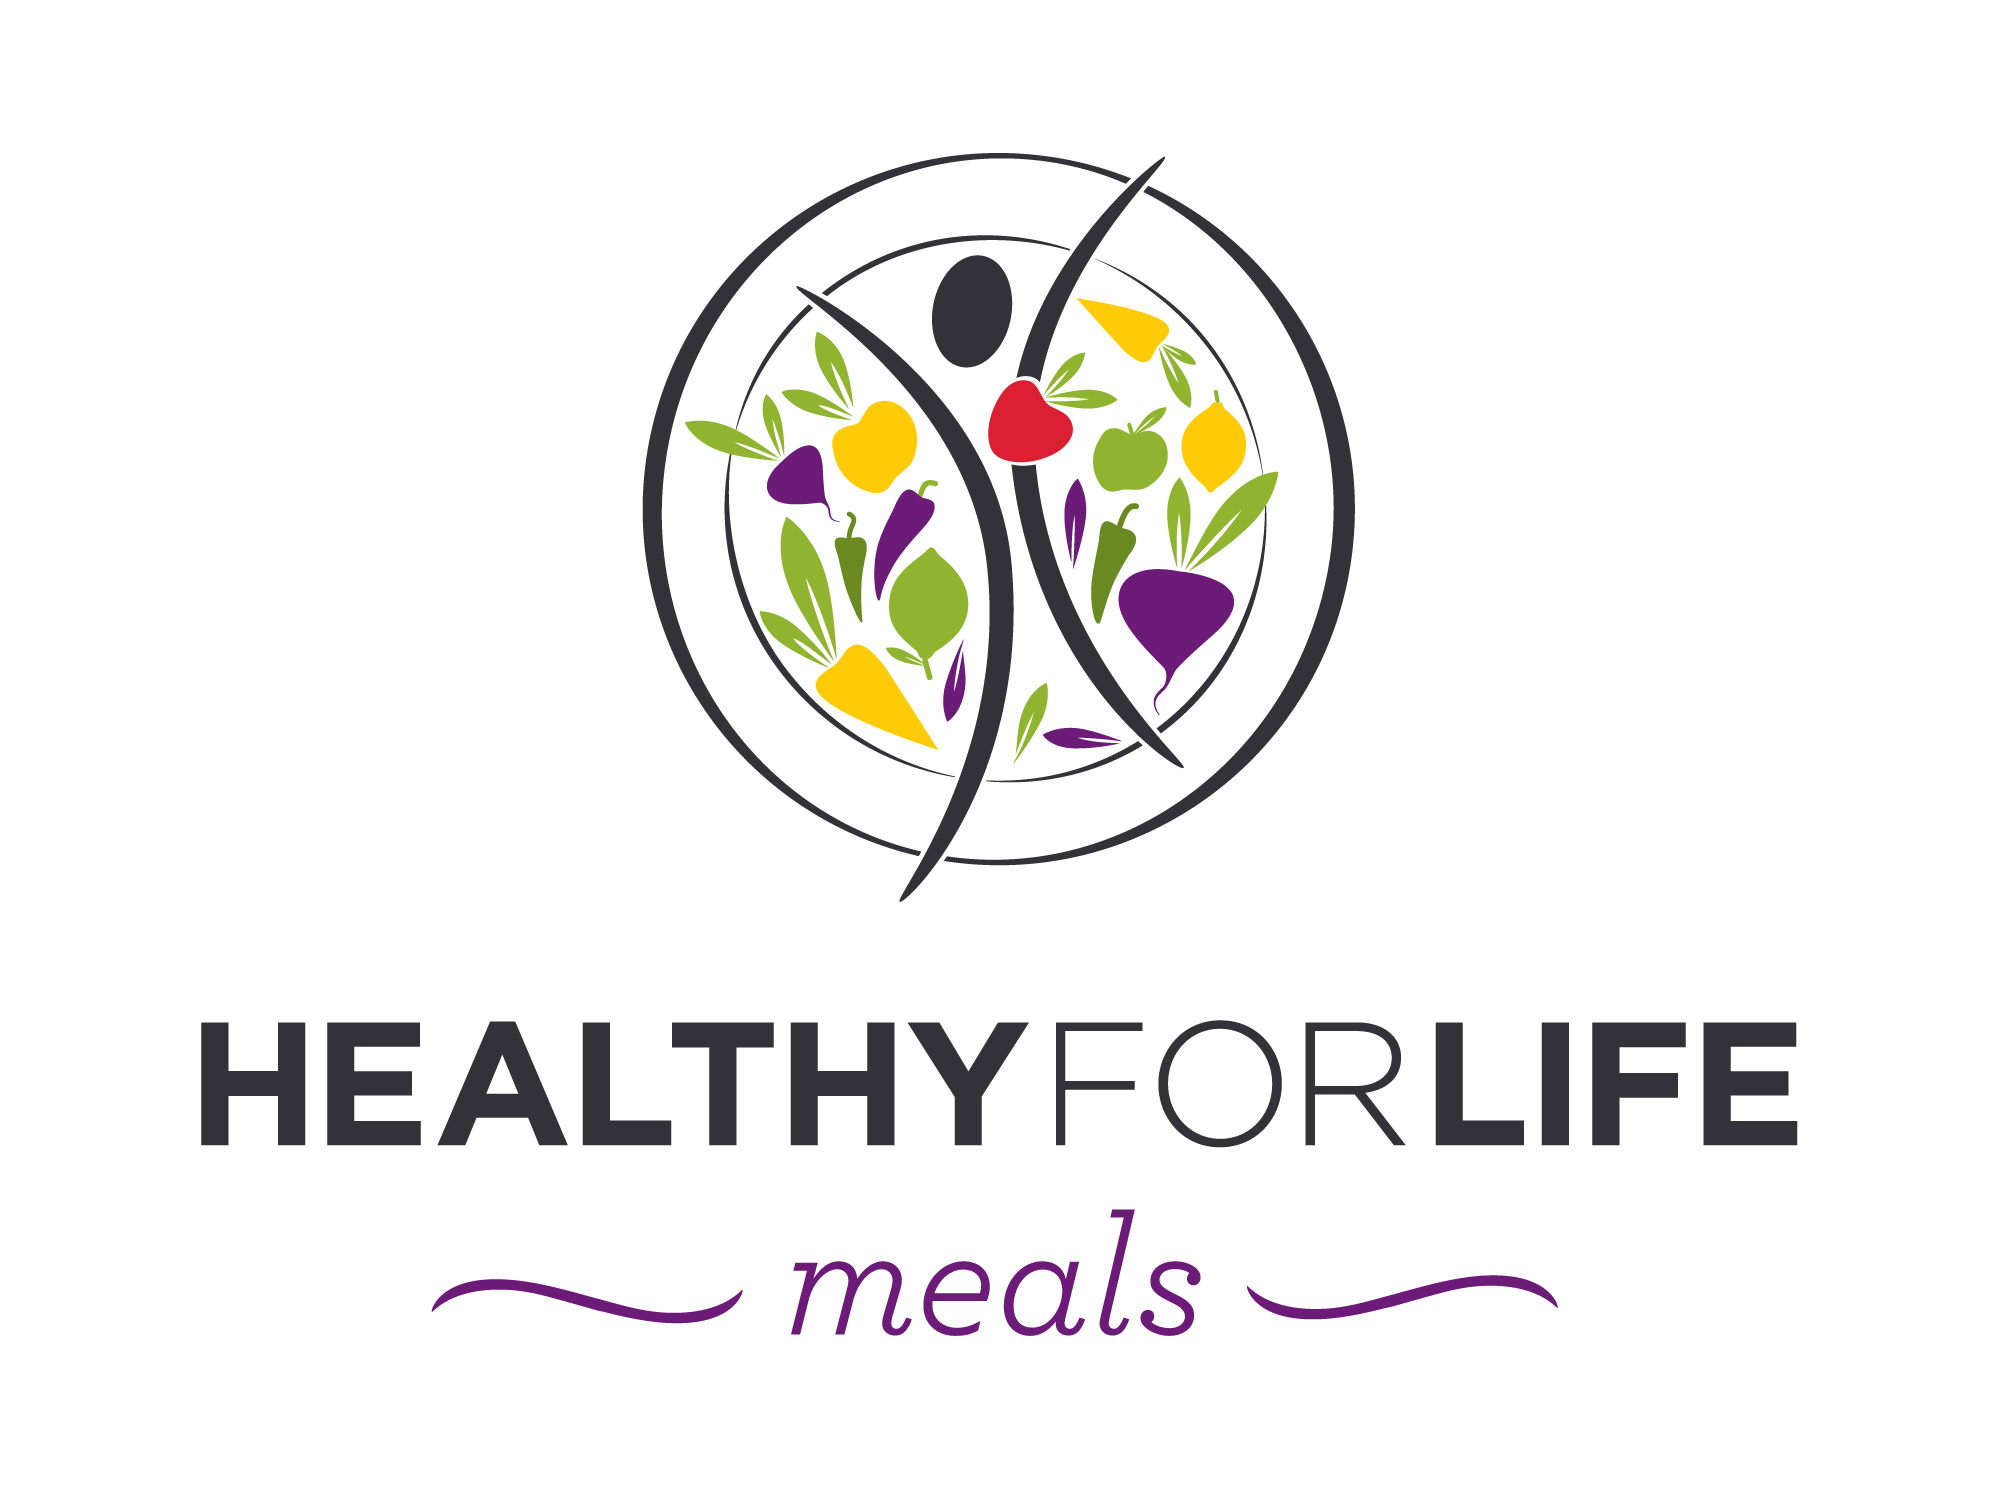 Healthy For Life Meals brings Fresh Approach to Weight Loss into Chicago Market